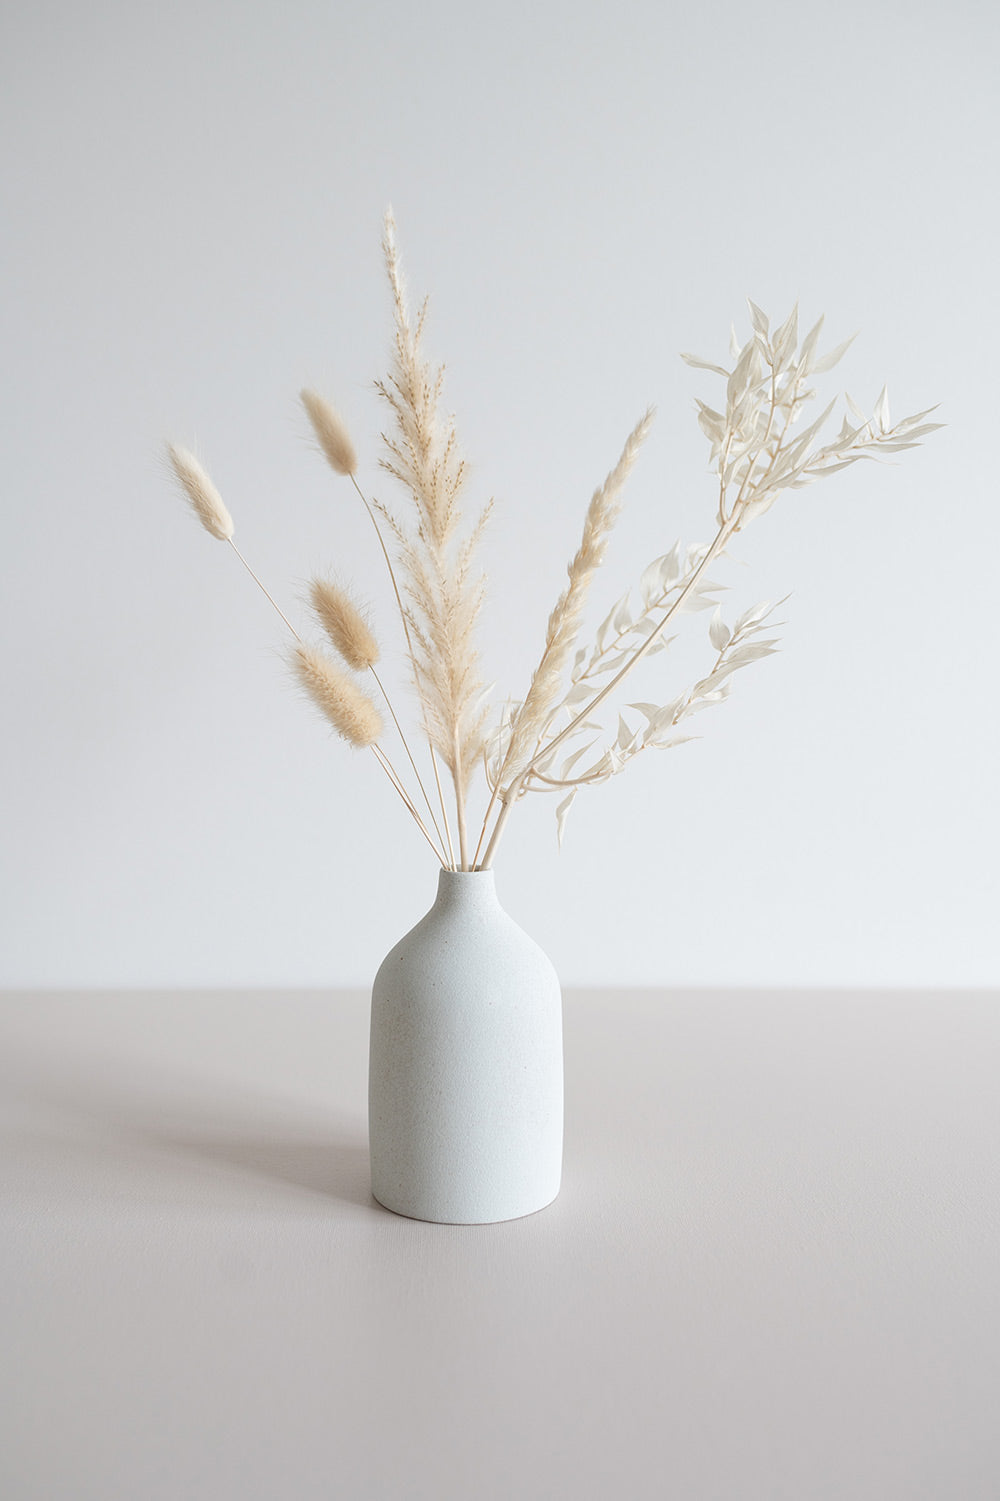 White bud vase with cream coloured bunny tails, pampas grass and white Italian ruscus.